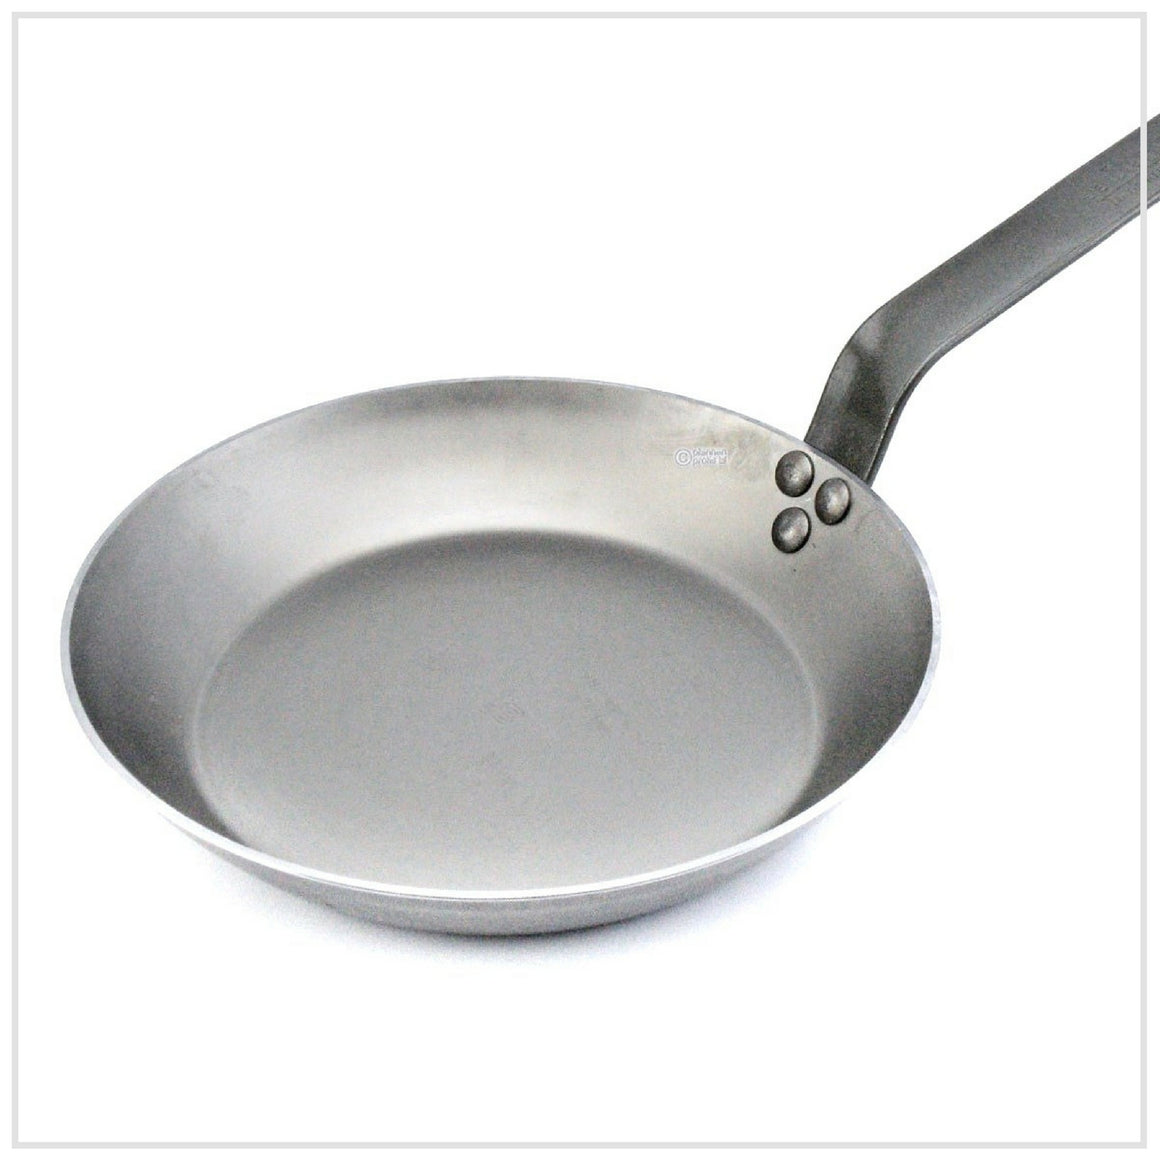 De Buyer Mineral B Fry pan - 20 cm